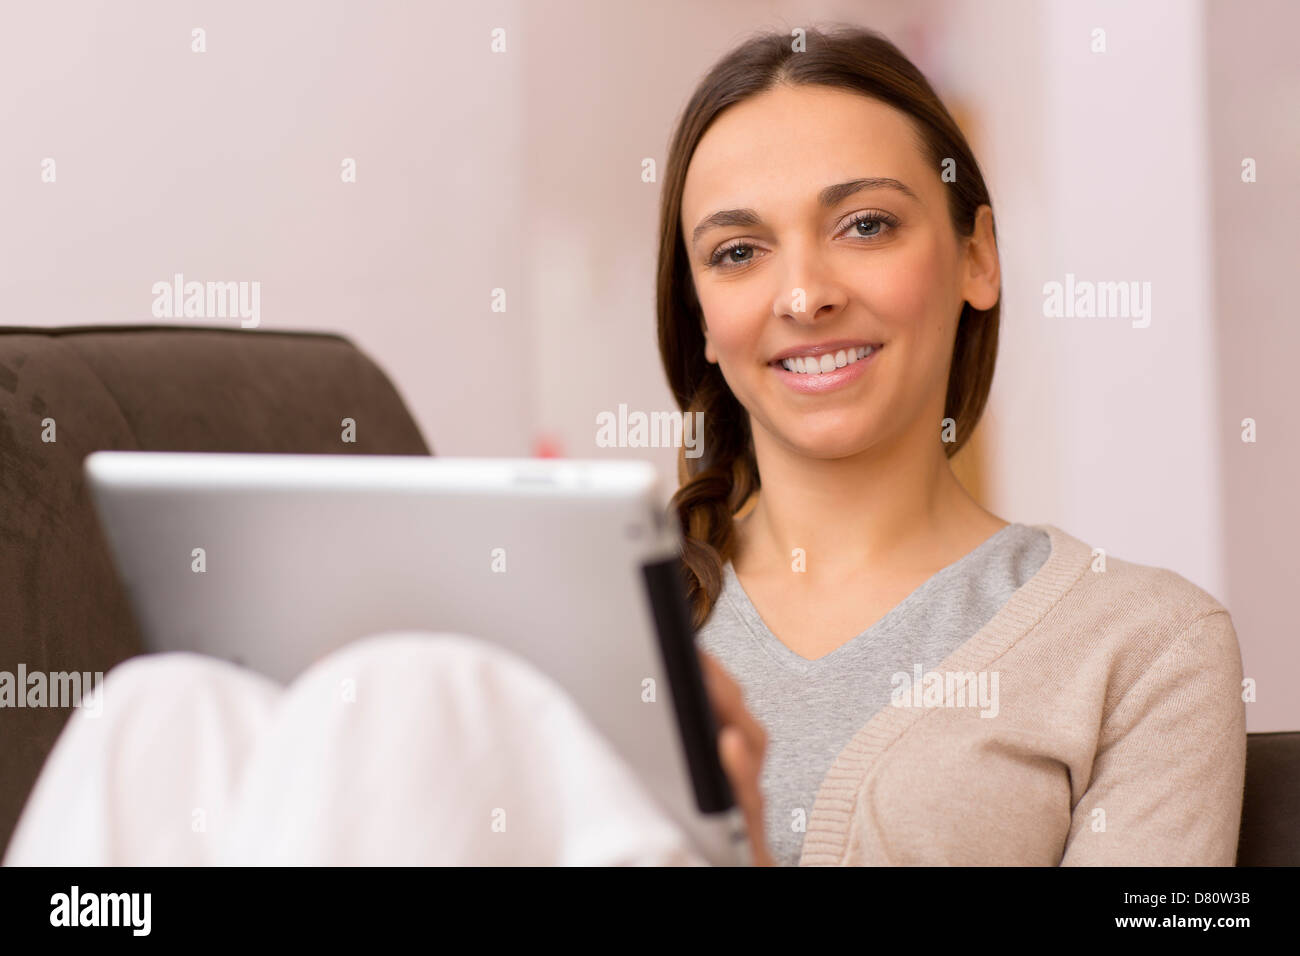 female consults email on pad, she look at the camera - Stock Image